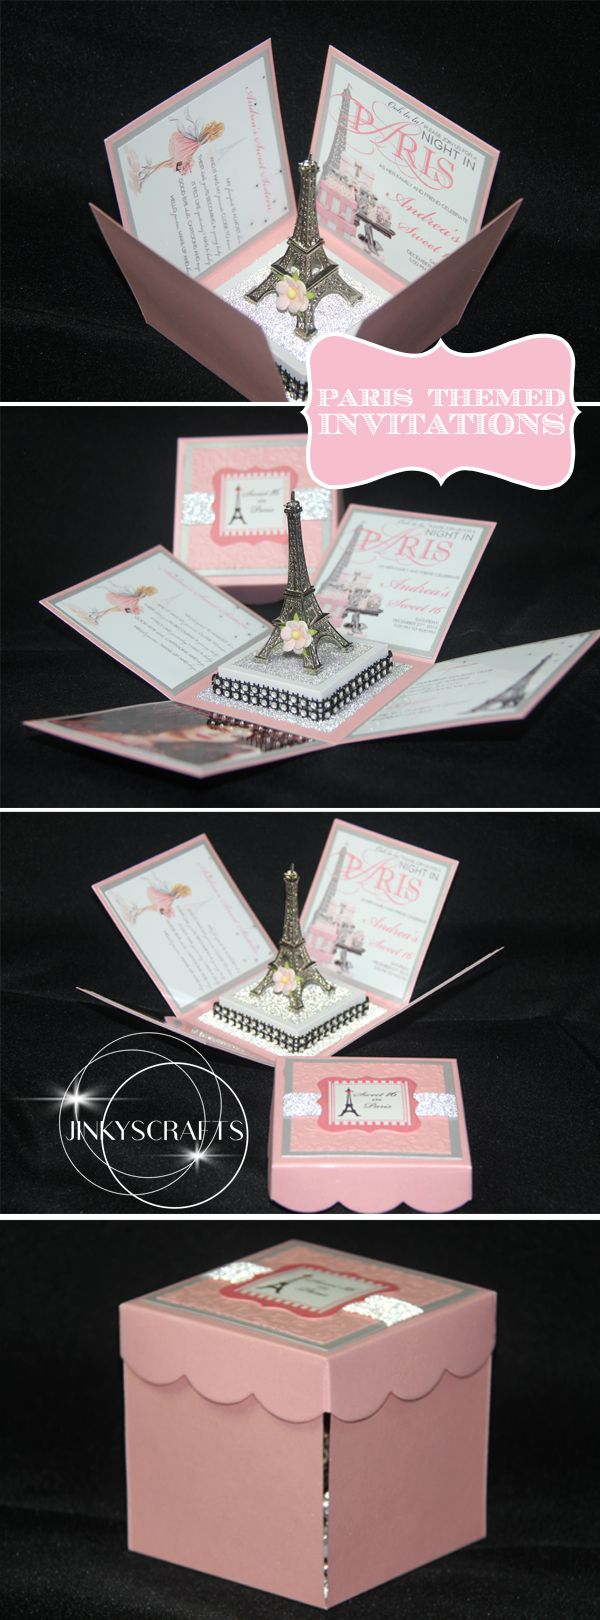 Unique Paris Themed Invitation for Paris Themed Sweet 16, Paris Themed Wedding, Paris Themed Bridal Shower, Paris Themed Quinceanera or any Night In Paris events. Paris Bridal Shower. This is an exploding box pop up invitation with Eiffel Tower centerpiece. Completely customizable.